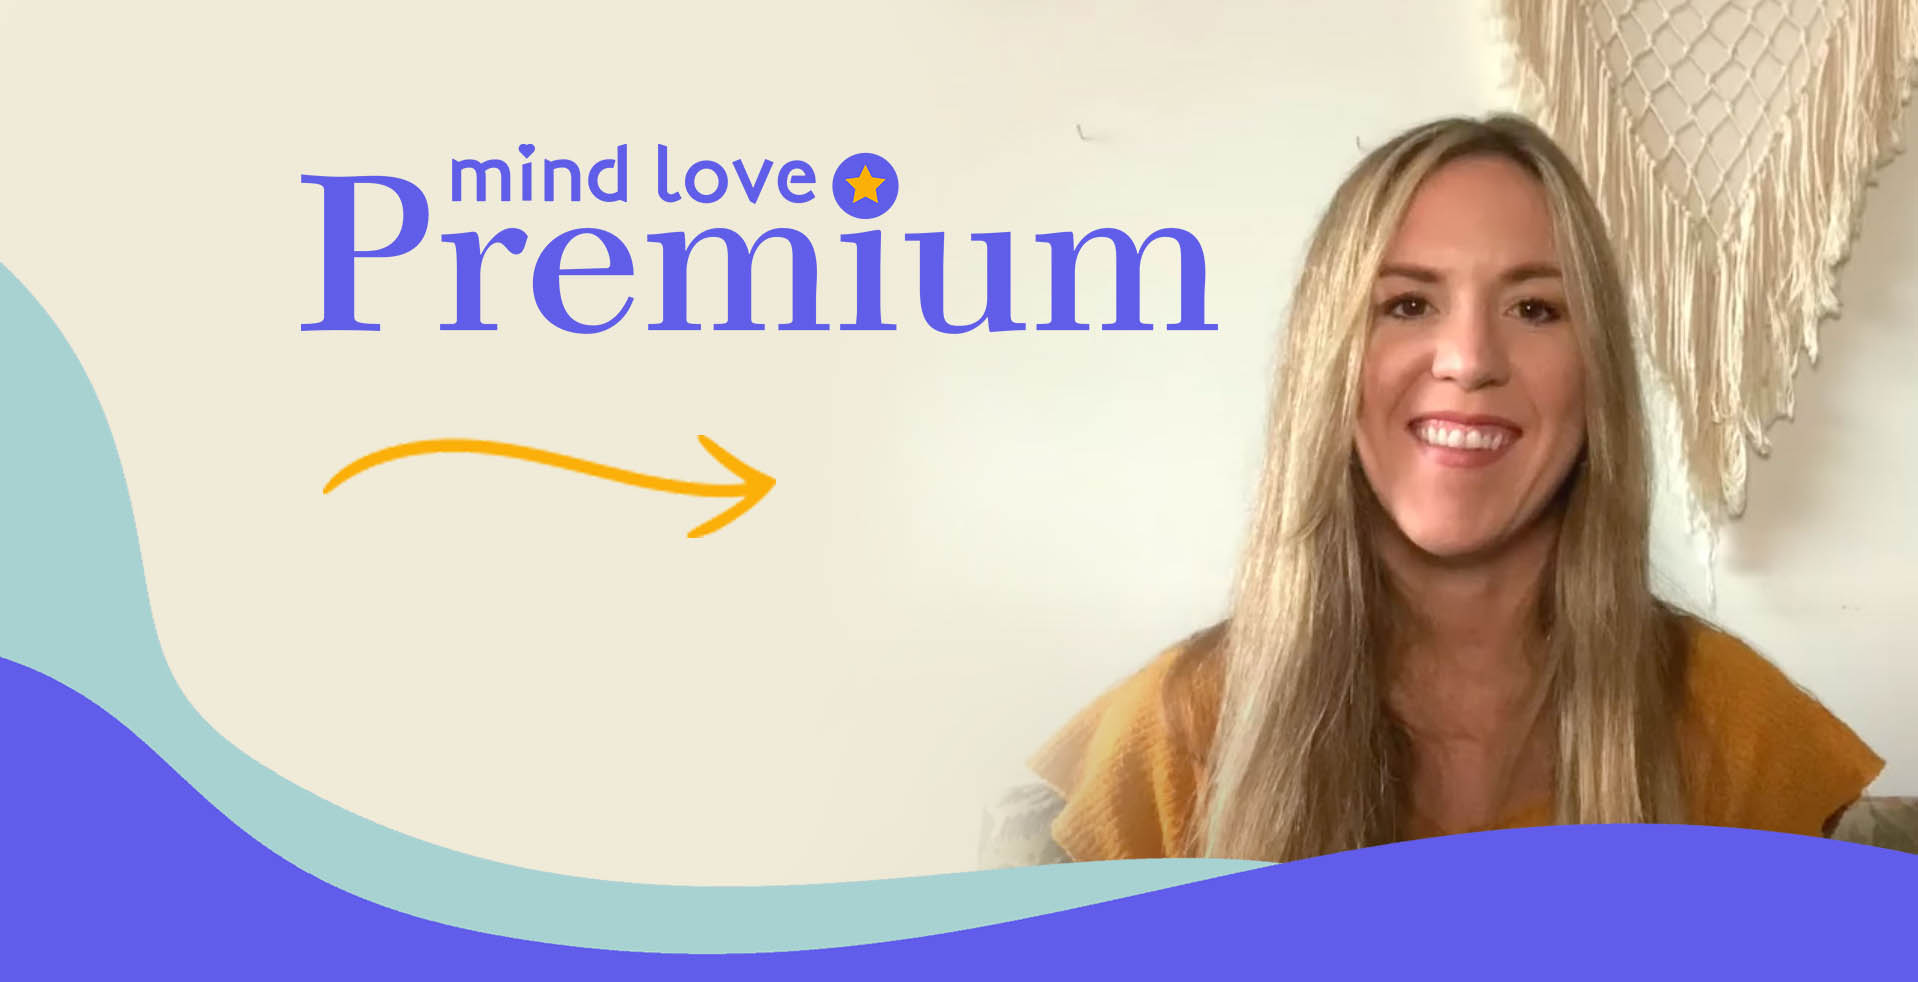 Mind Love Premium Video Featured Image